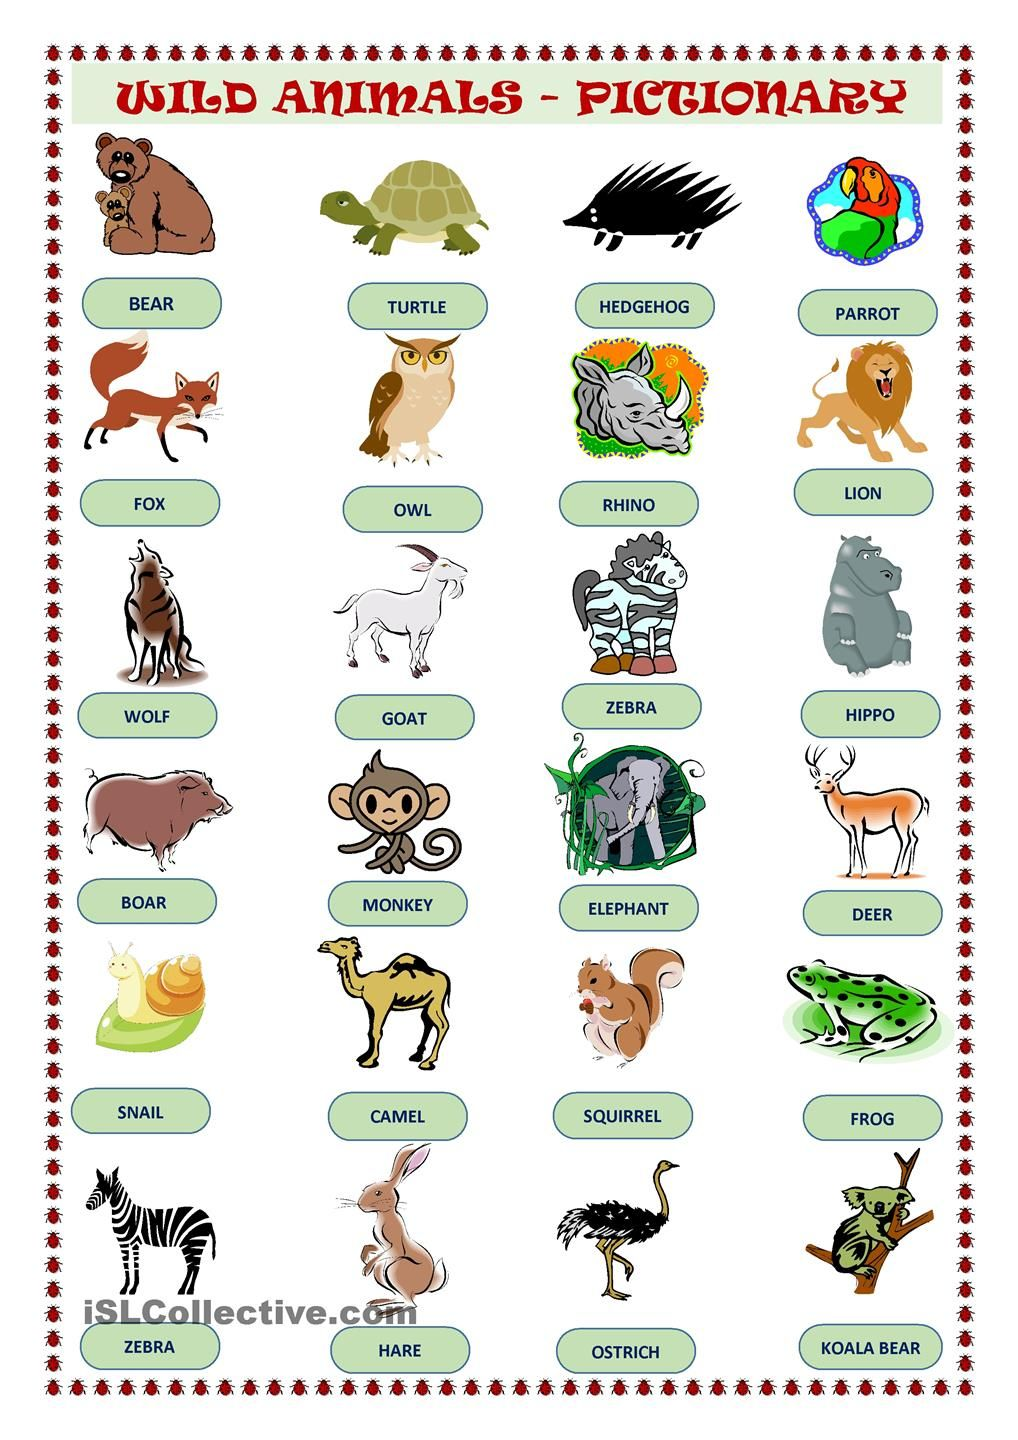 Wild Animals Pictionary | Animals and their homes, Animals wild, Pet signs